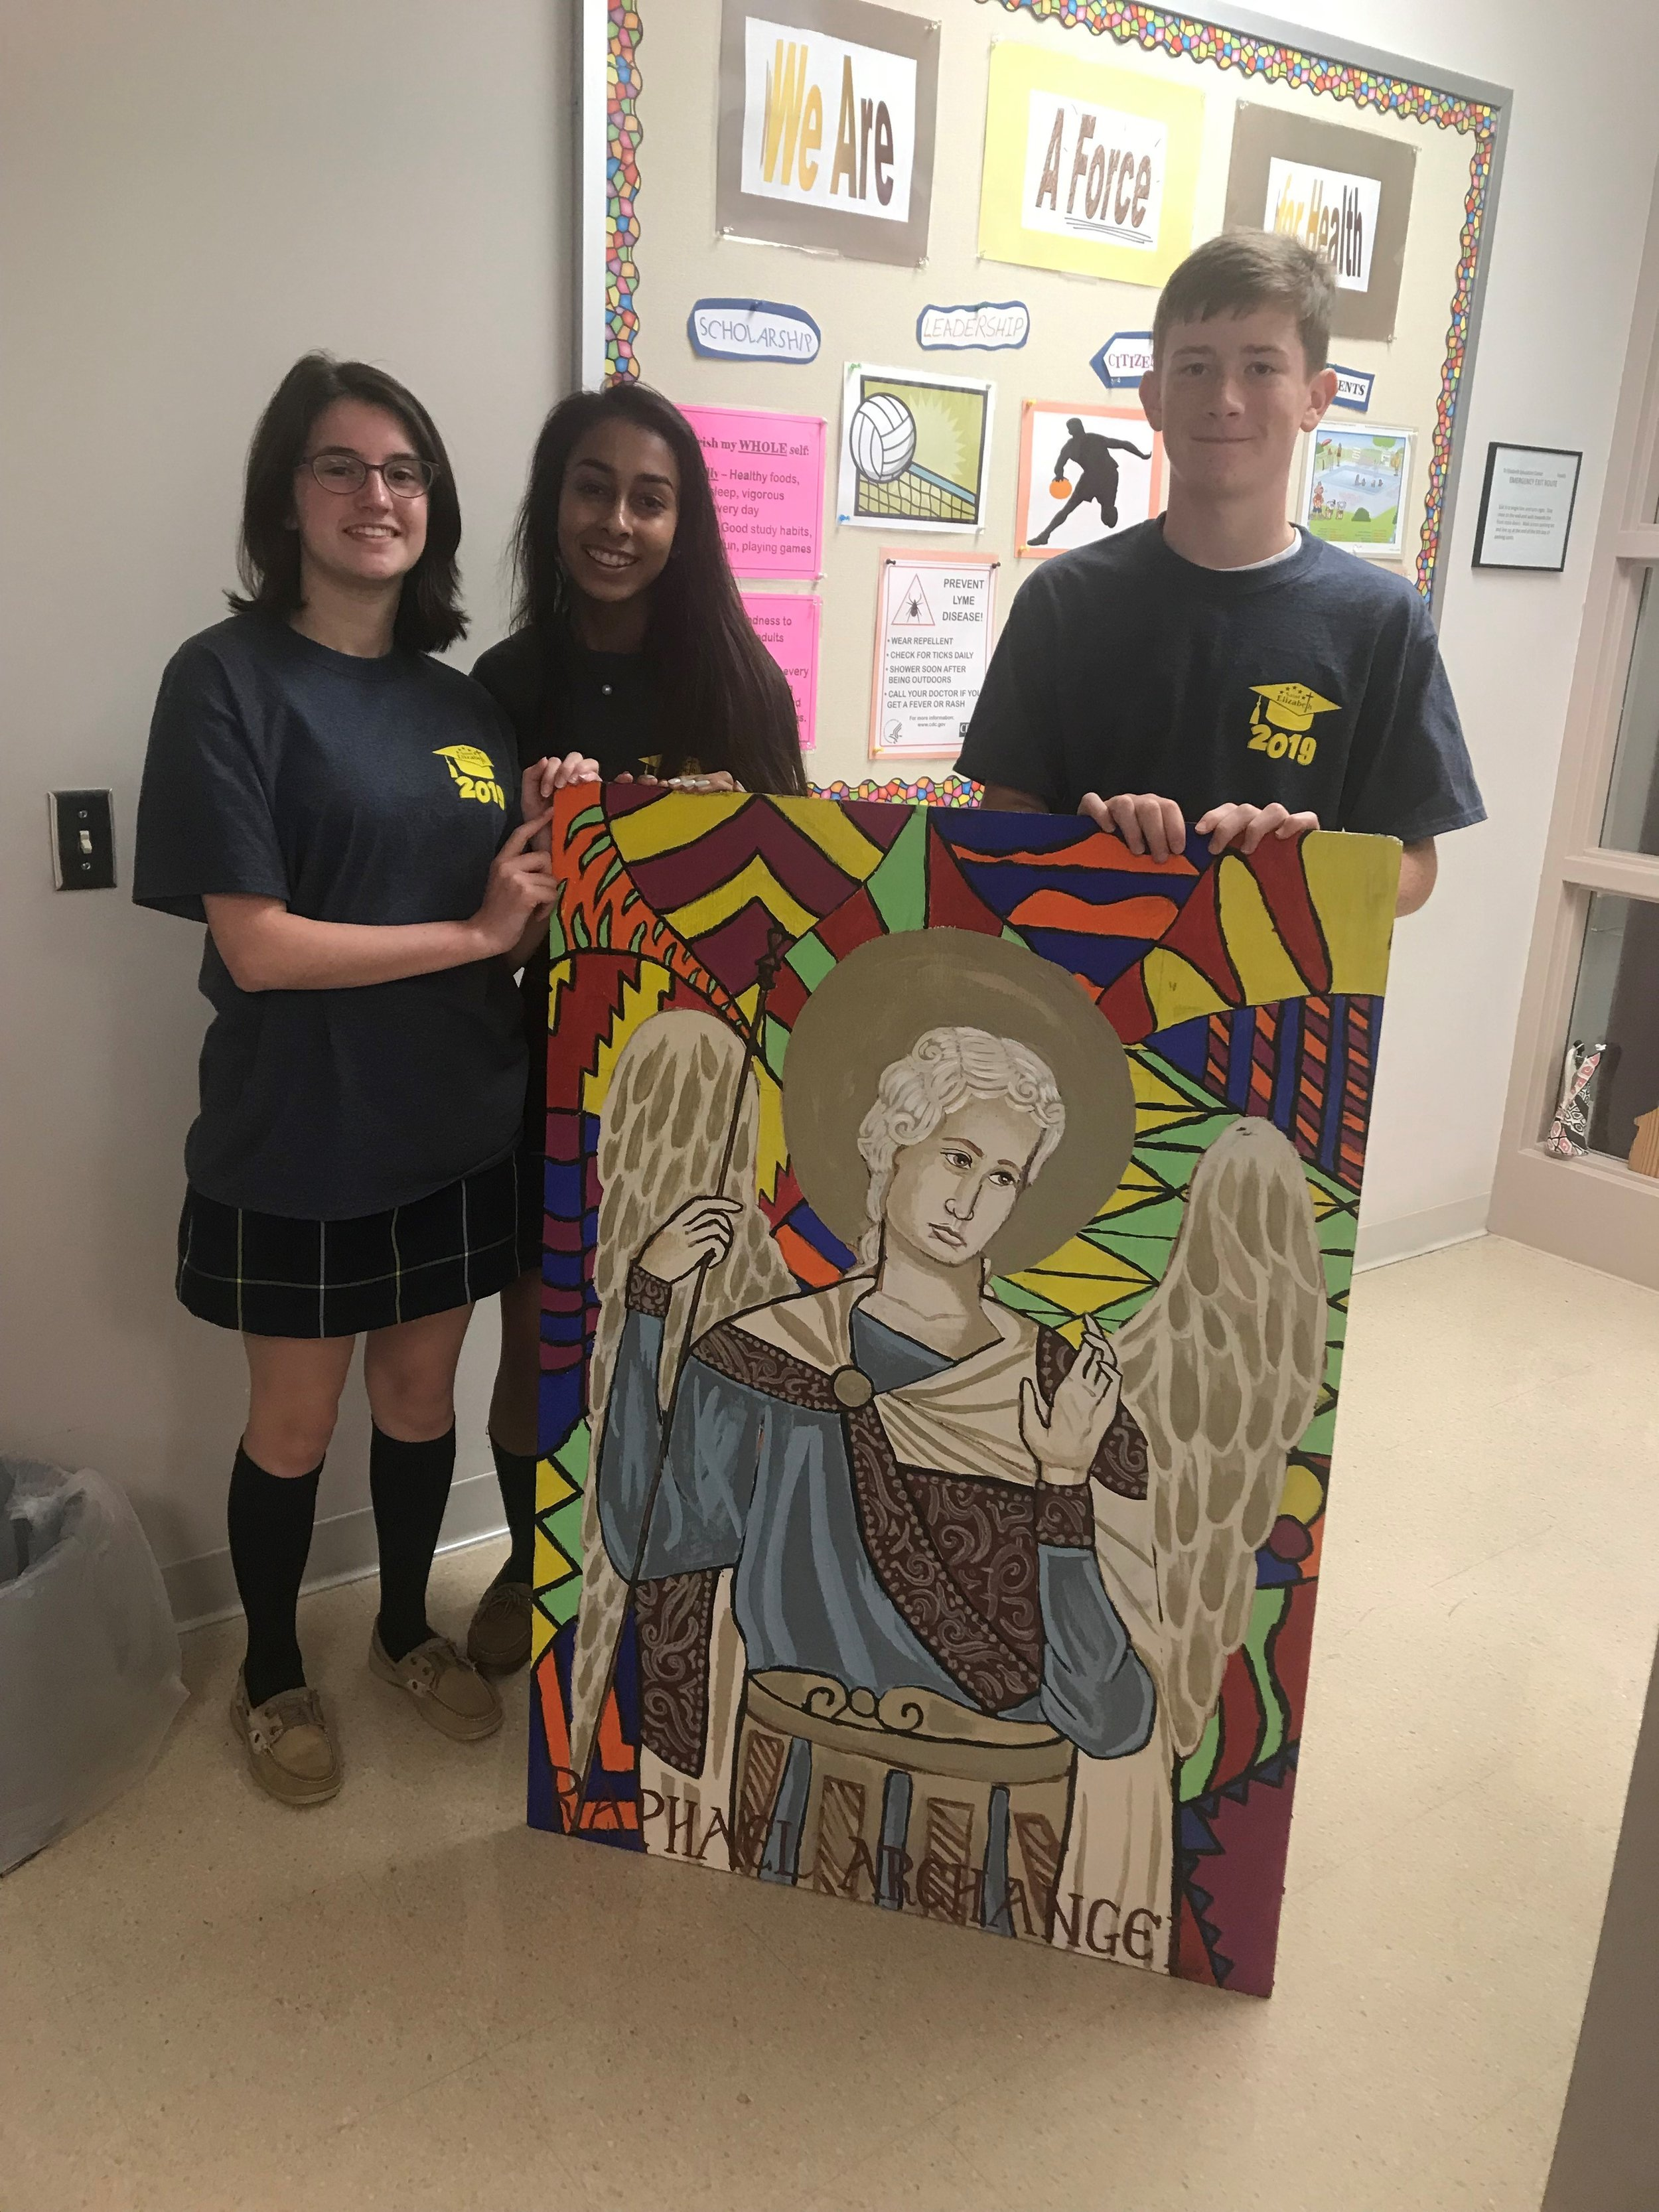 June 11, 2019: (From R): Students Stella R., Mikhela P. and Ryan G., along with art teacher Mrs. Liz Griffin, presented the Class of 2019 art gift to the school. This painting on plywood is of Saint Raphael, Archangel, and patron saint of the sick. It will be hung in the Nurse's office over the summer. Thank you to the Class of 2019 for this beautiful gift! (Photo: Mrs. Sara Richardson, Communications Coordinator)